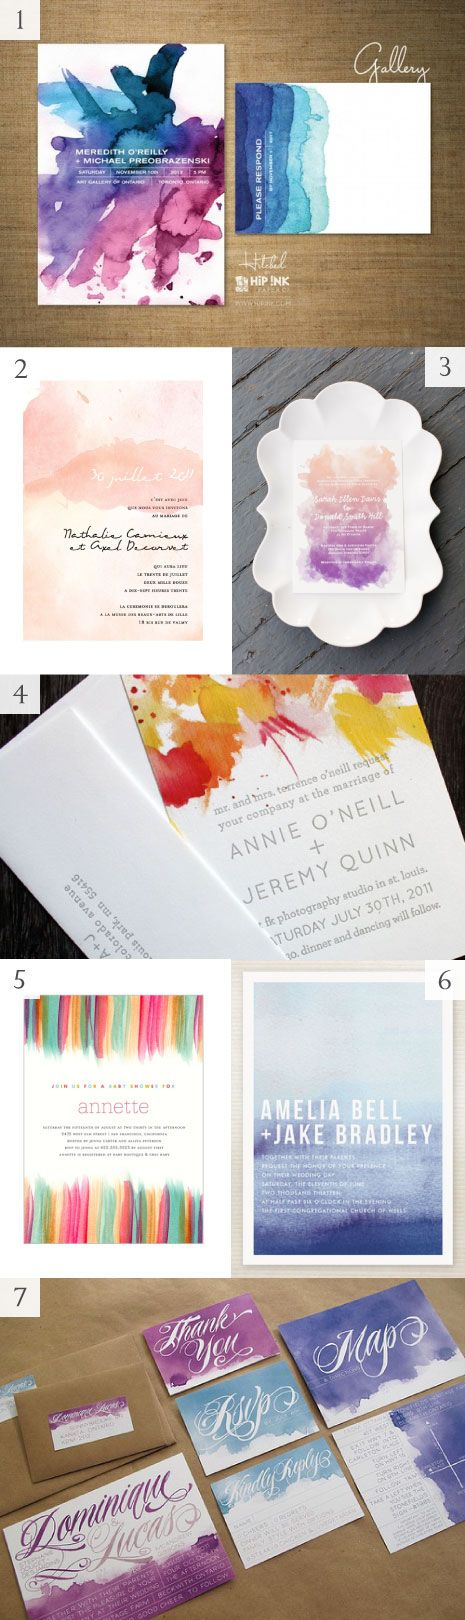 watercolor wedding invitations, great!